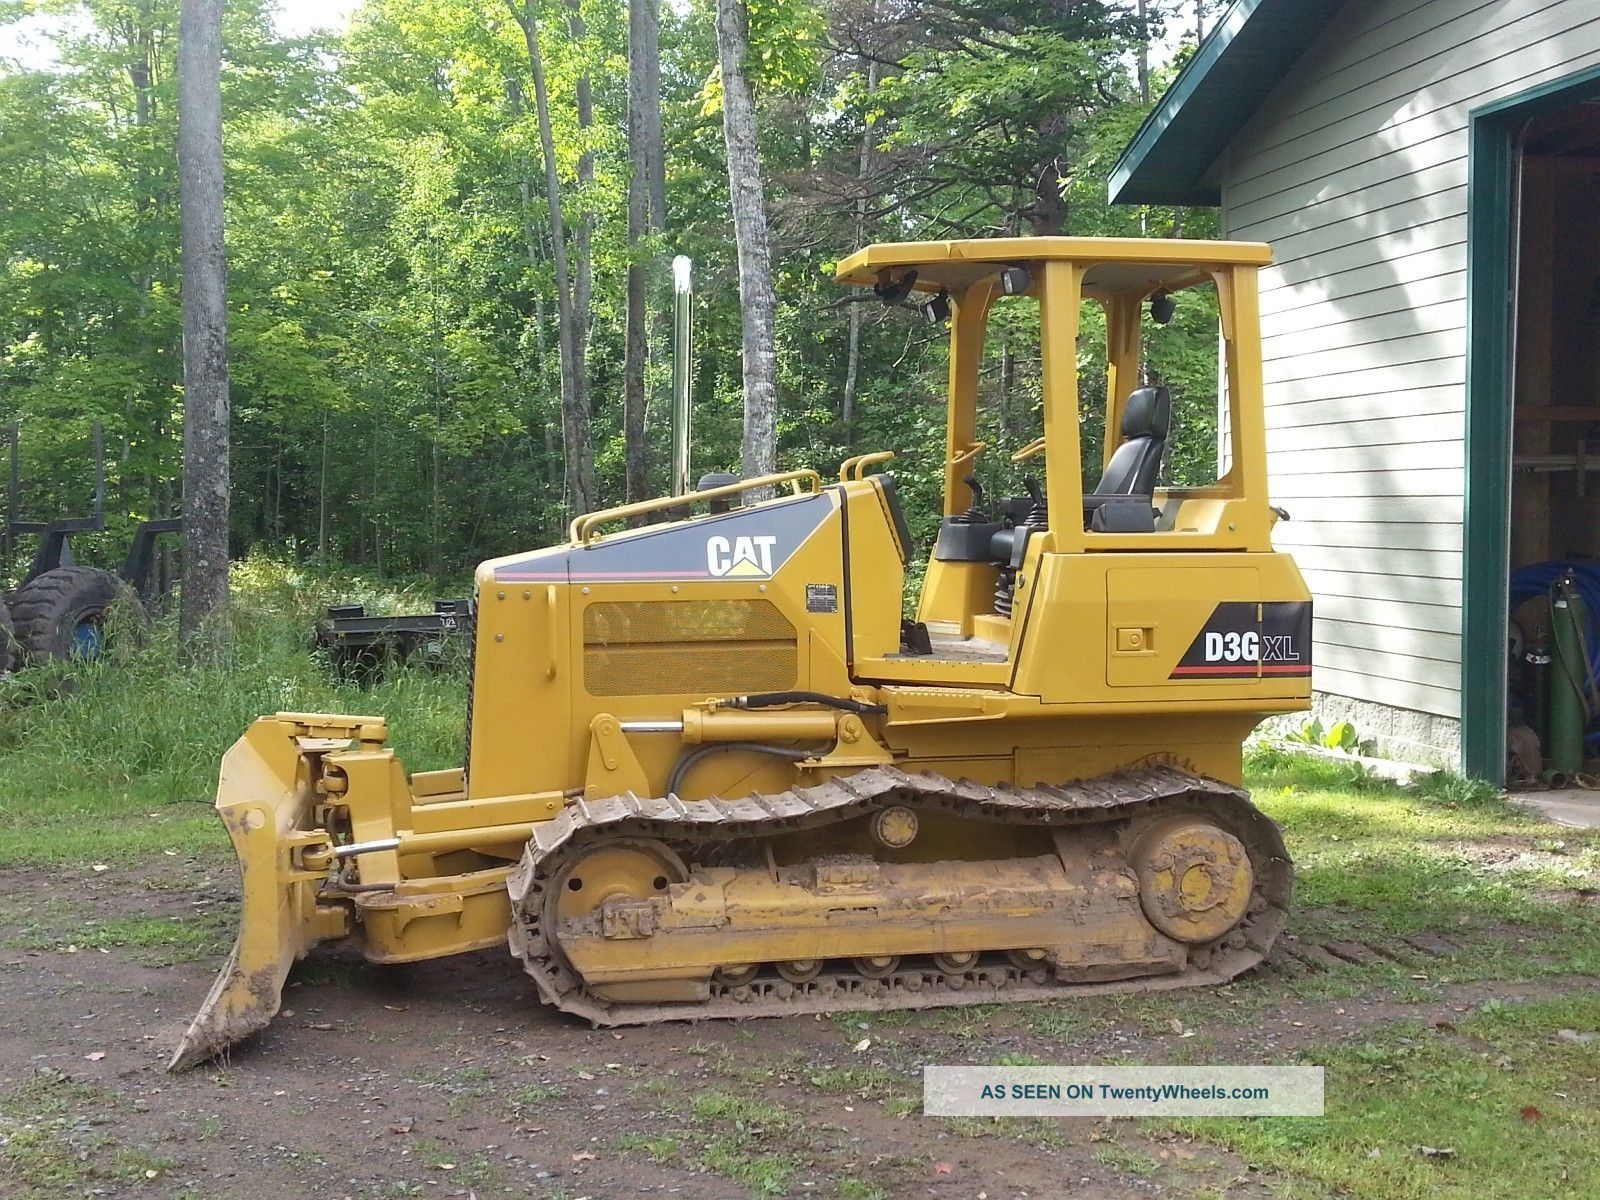 Cat D3g Xl Dozer Mining Equipment photo